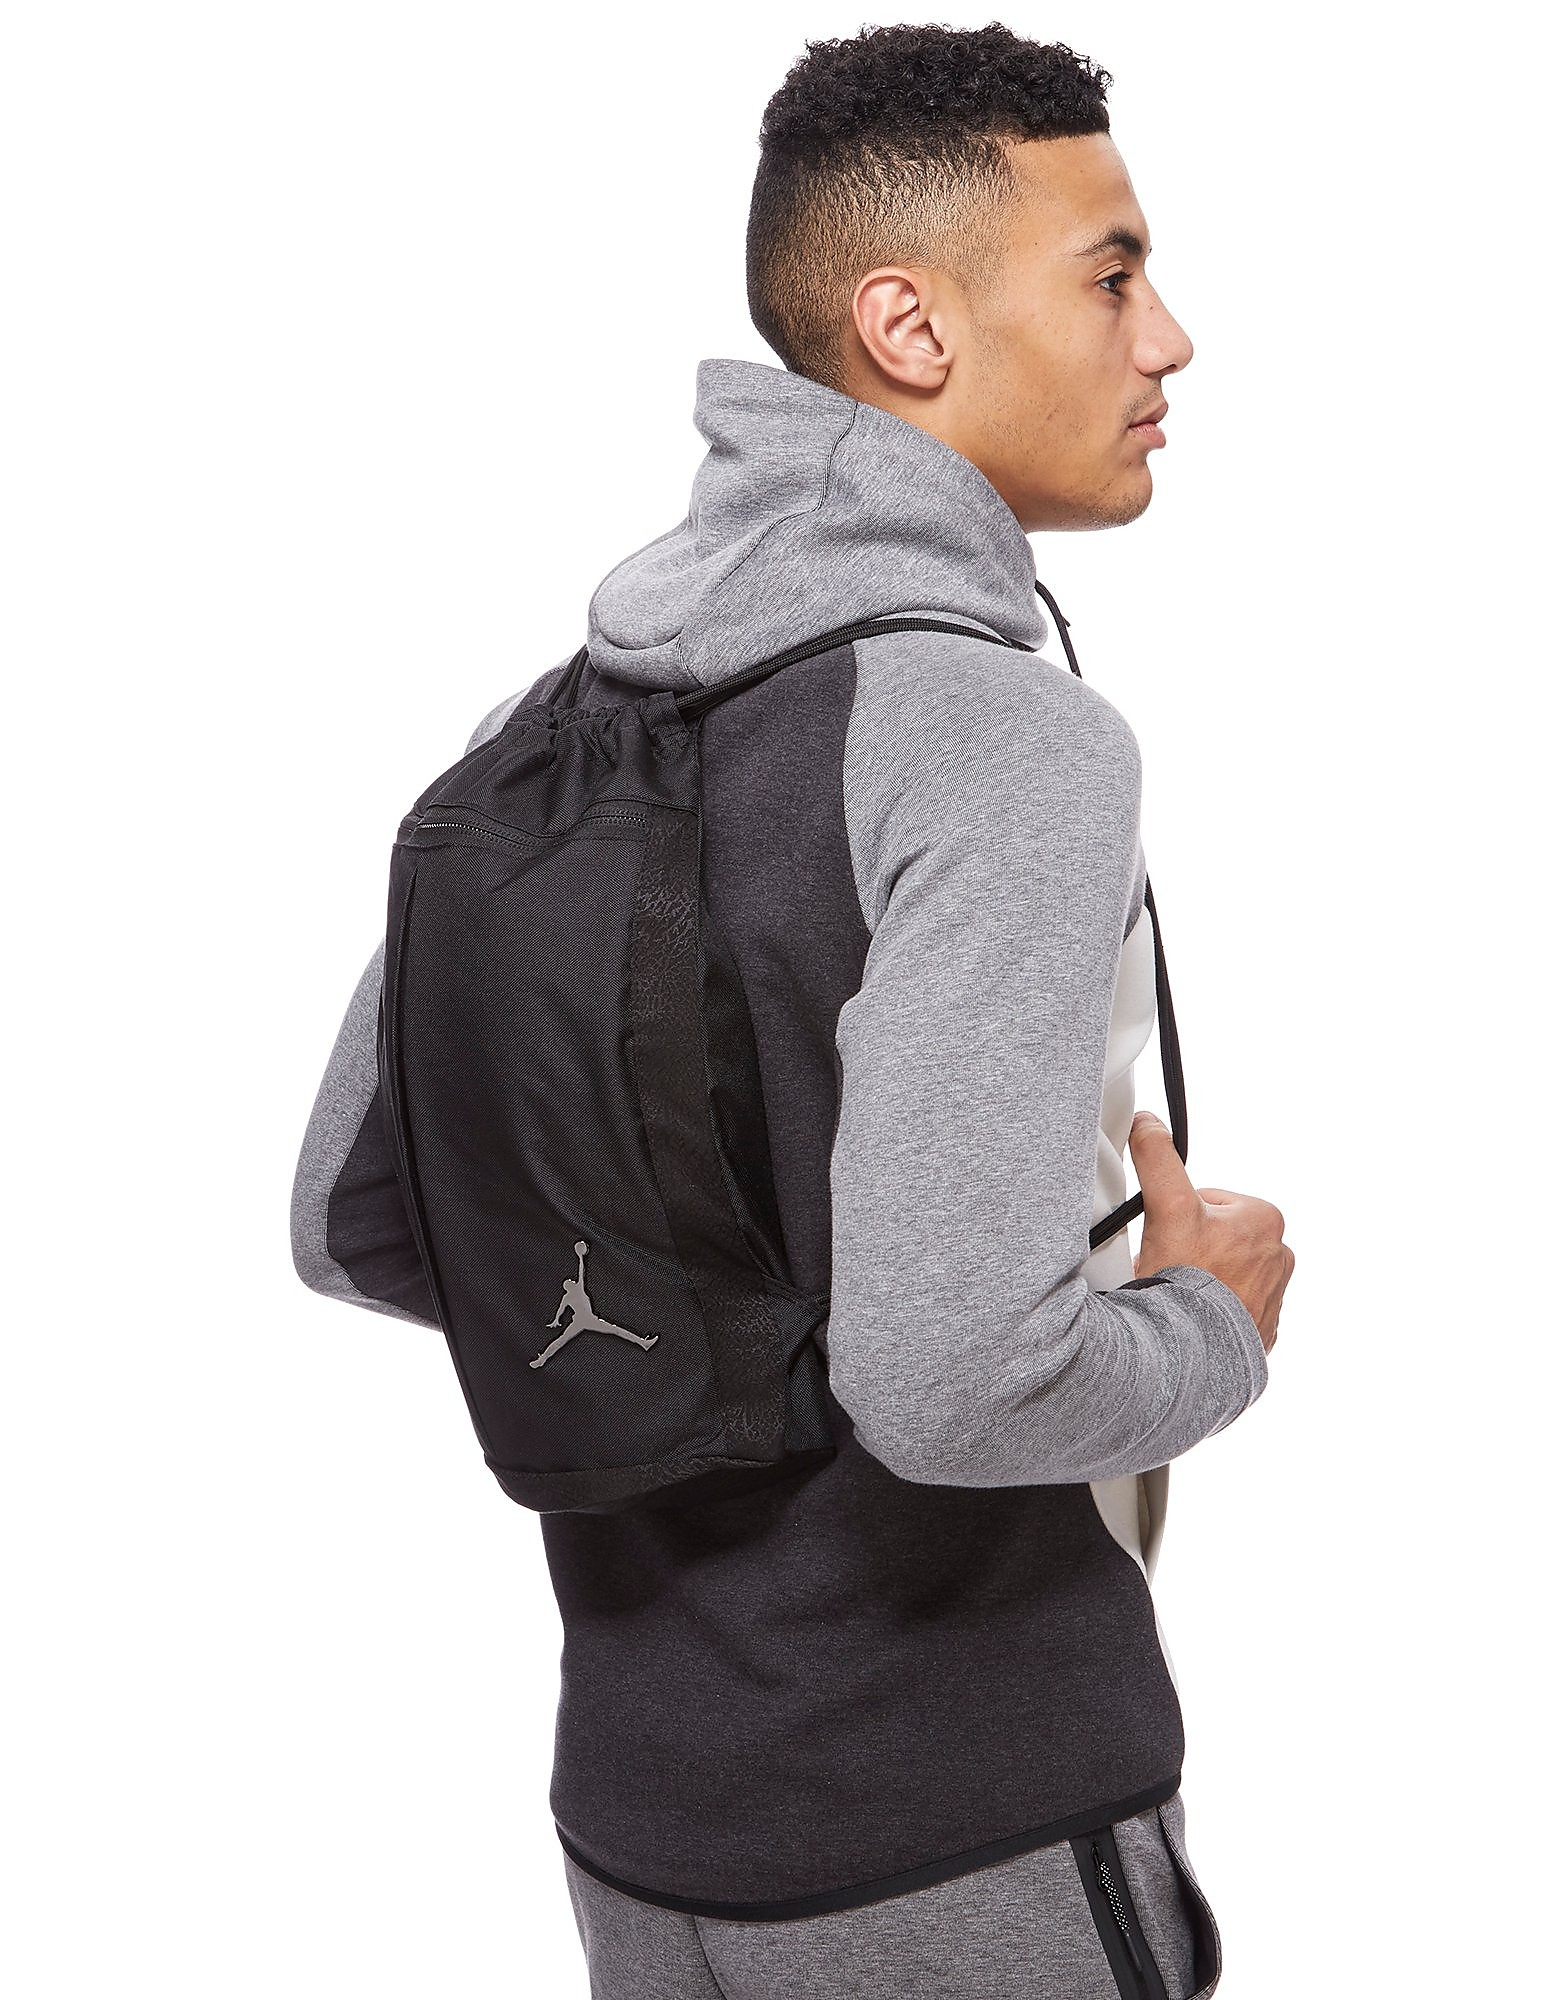 Jordan Unconscious Backpack